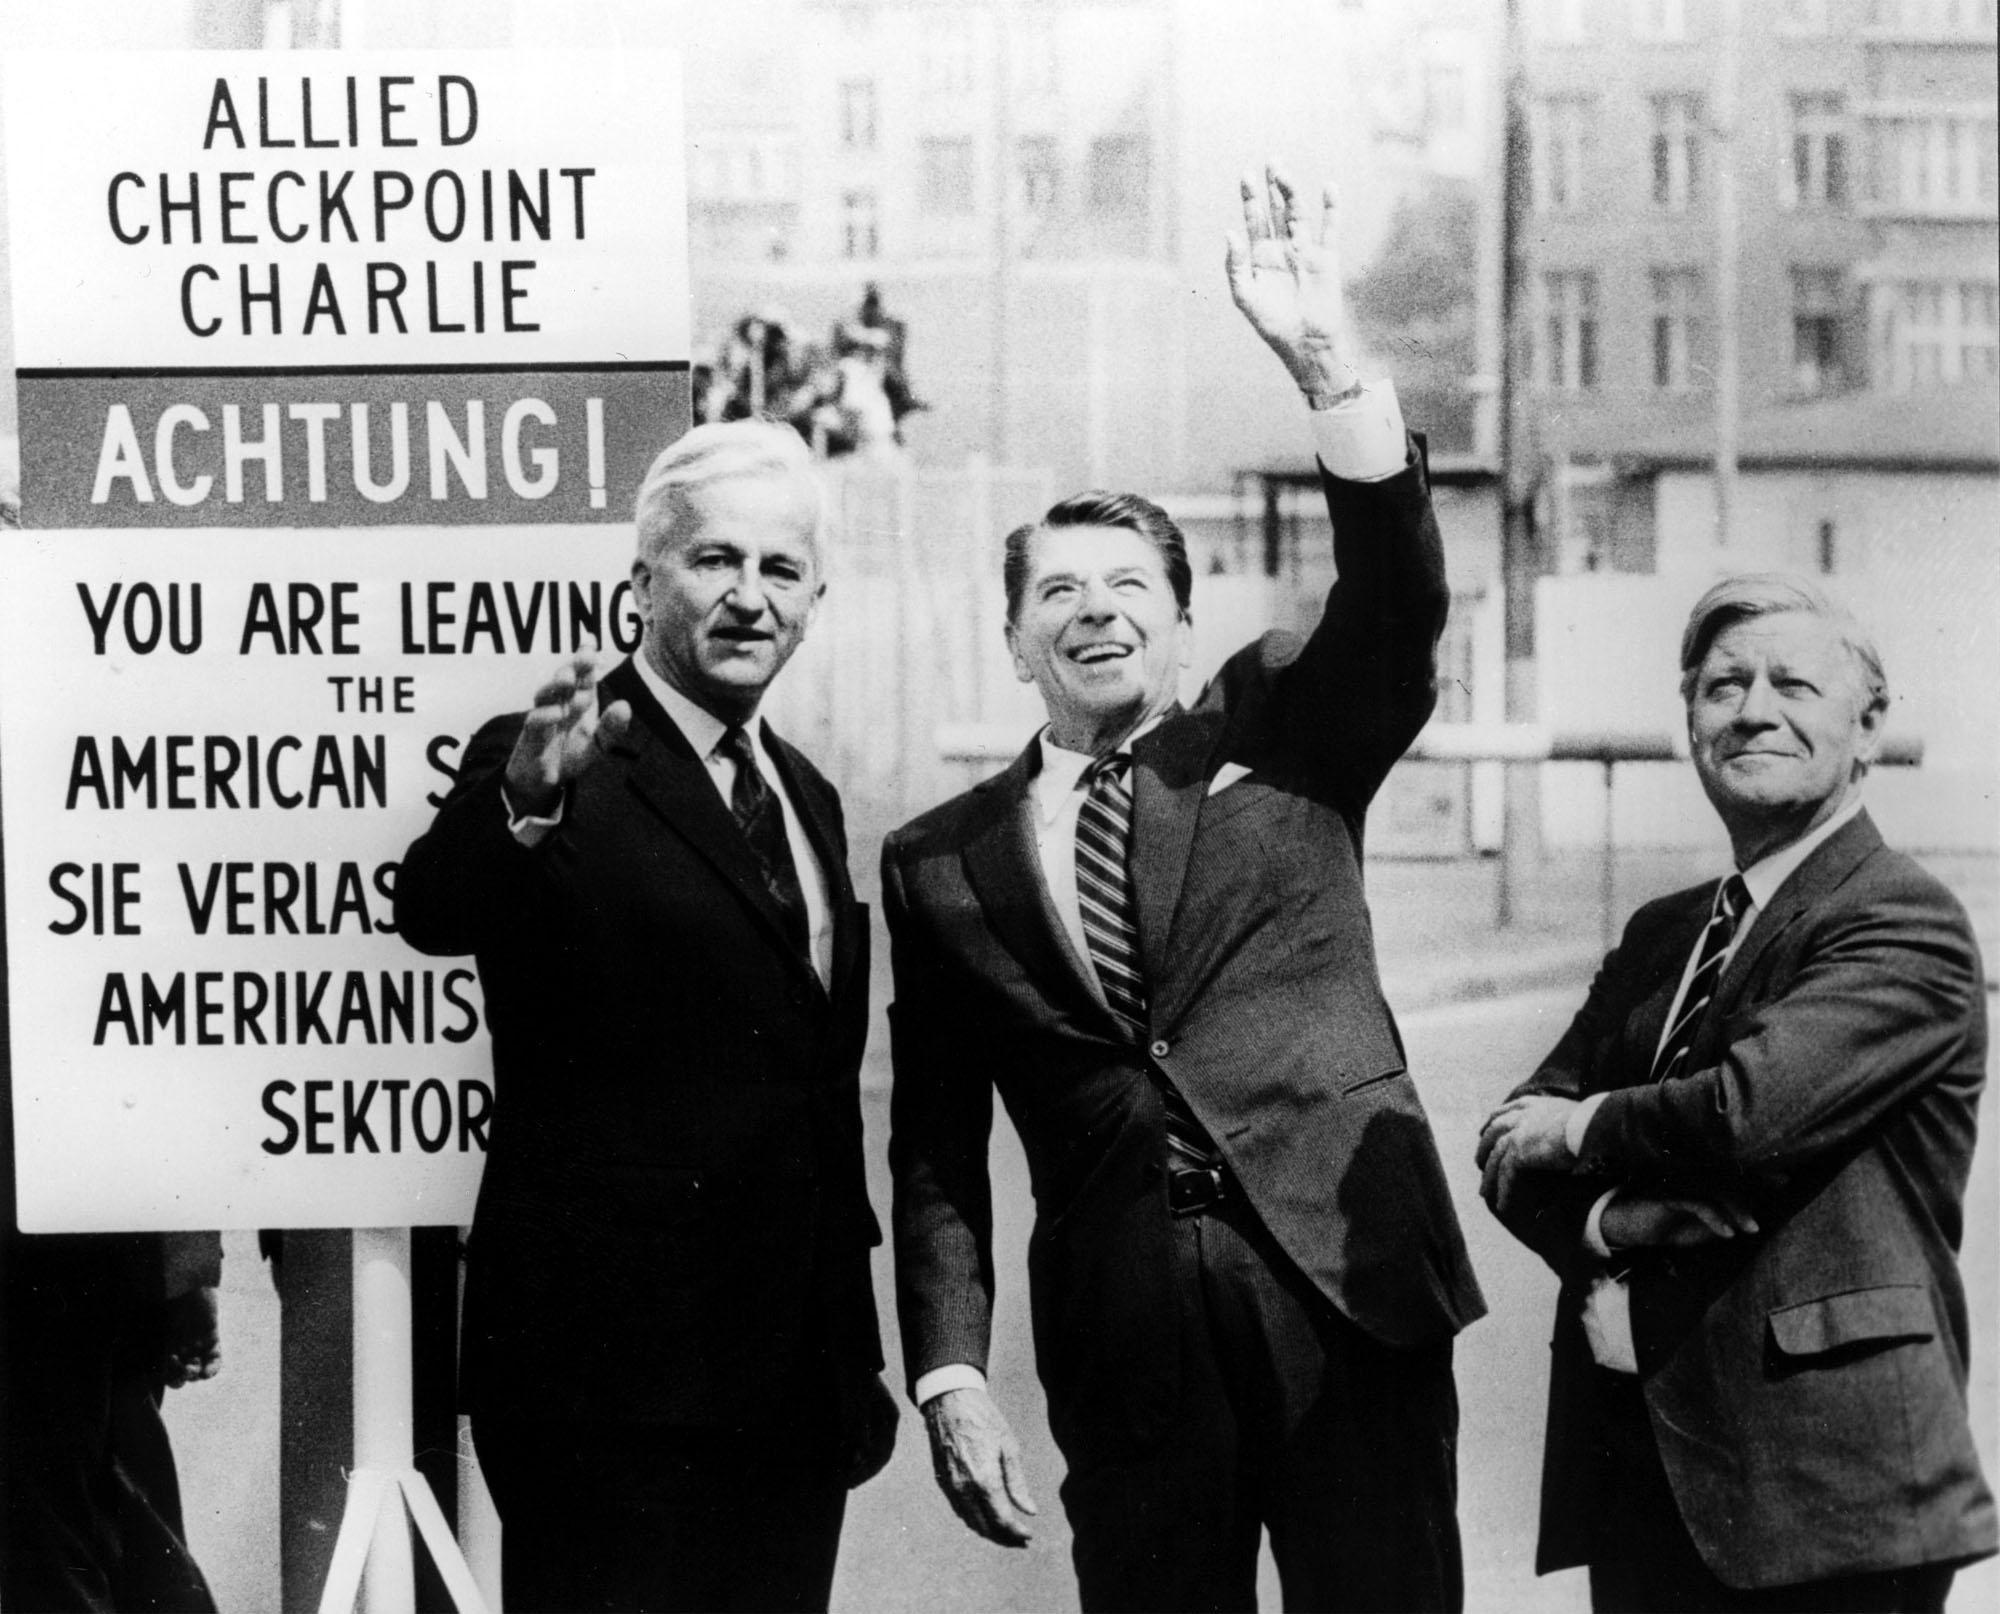 FILE - In this   June 11, 1982 file picture then  U.S. President Ronald Reagan, center,  waves to the crowd as he stands with then Mayor of West Berlin, Richard von Weizsaecker, left, and then West German Chancellor Helmut Schmidt in the American Sector at the Checkpoint Charlie in West Berlin.       (ANSA/AP Photo, str.file)  B/W ONLY